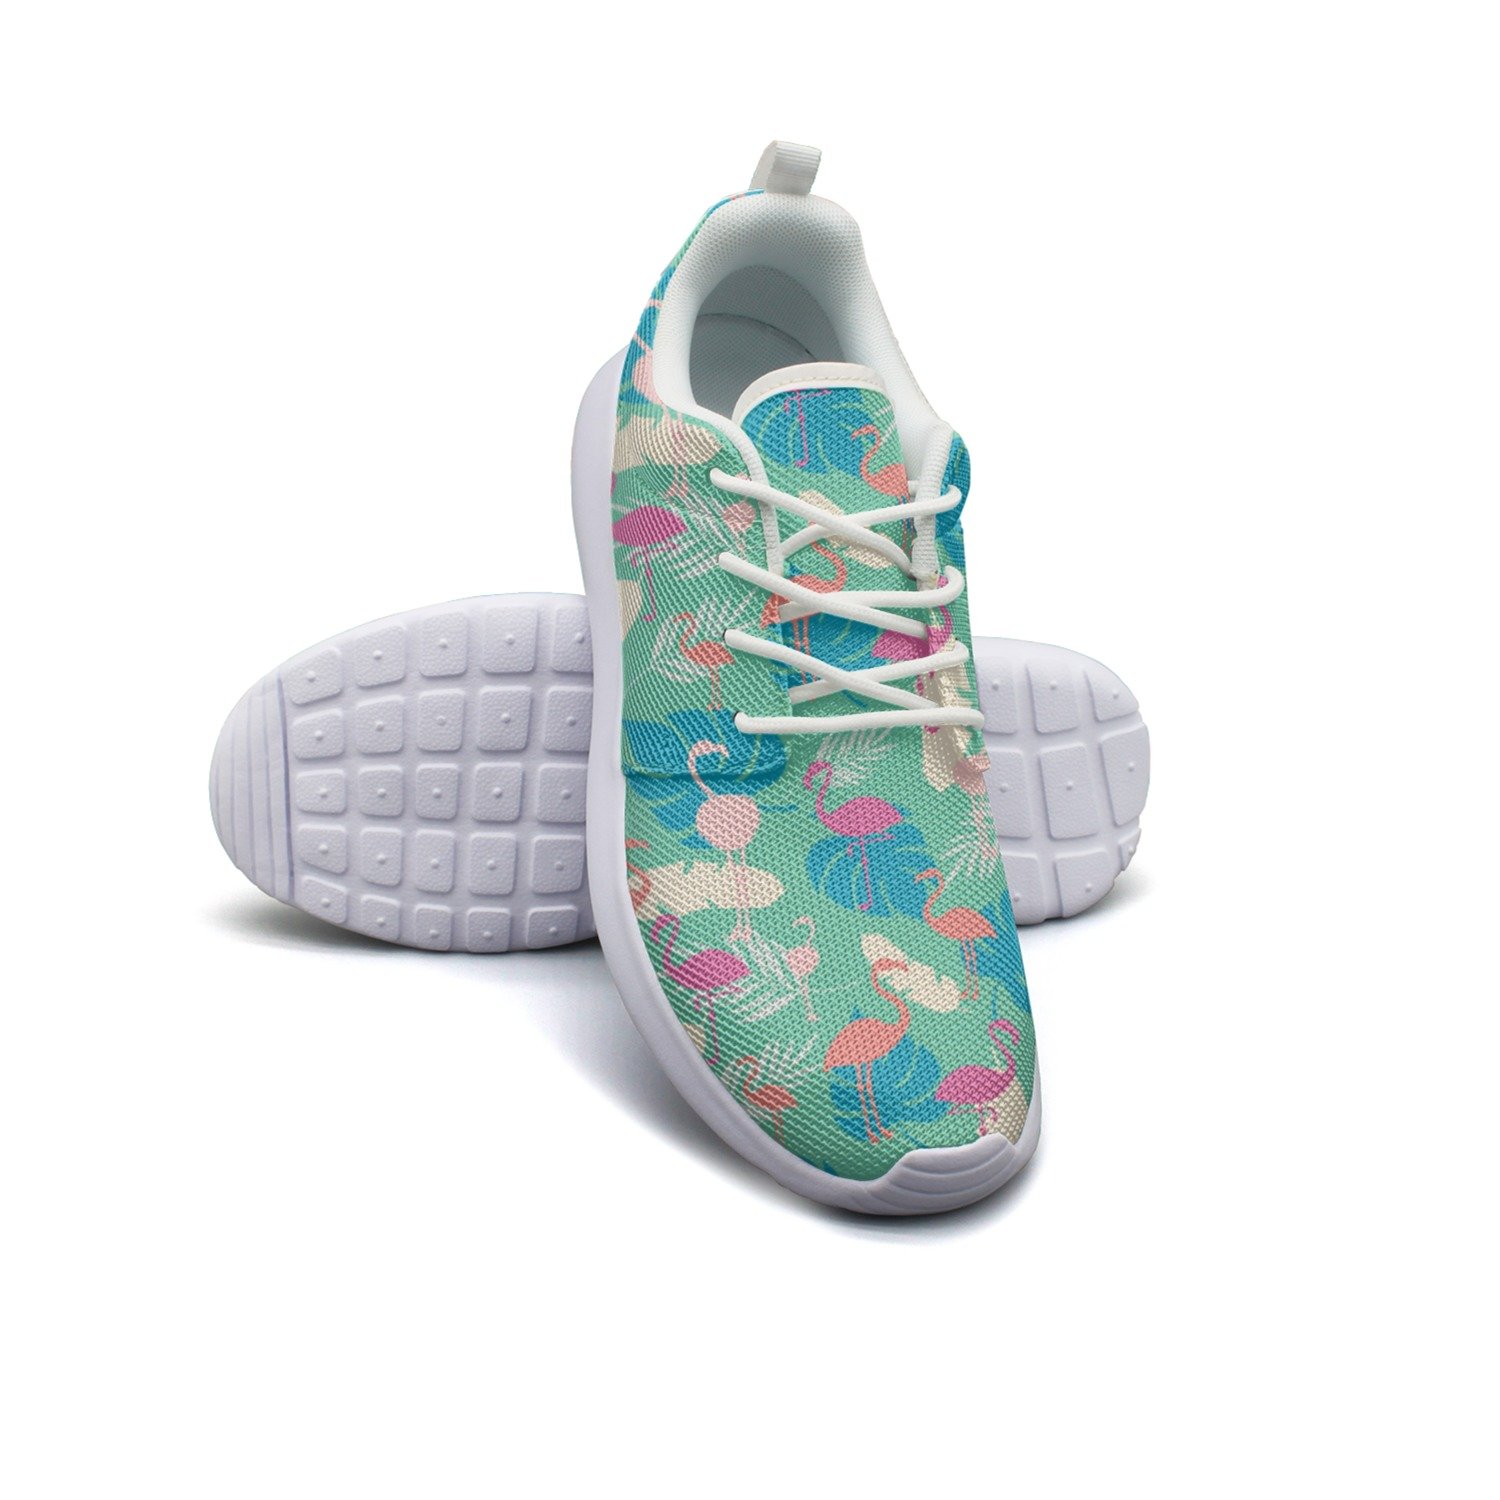 Eoyles gy Bright Tropical Summer Woman Slip Resistant Lightweight Running Sports Shoes